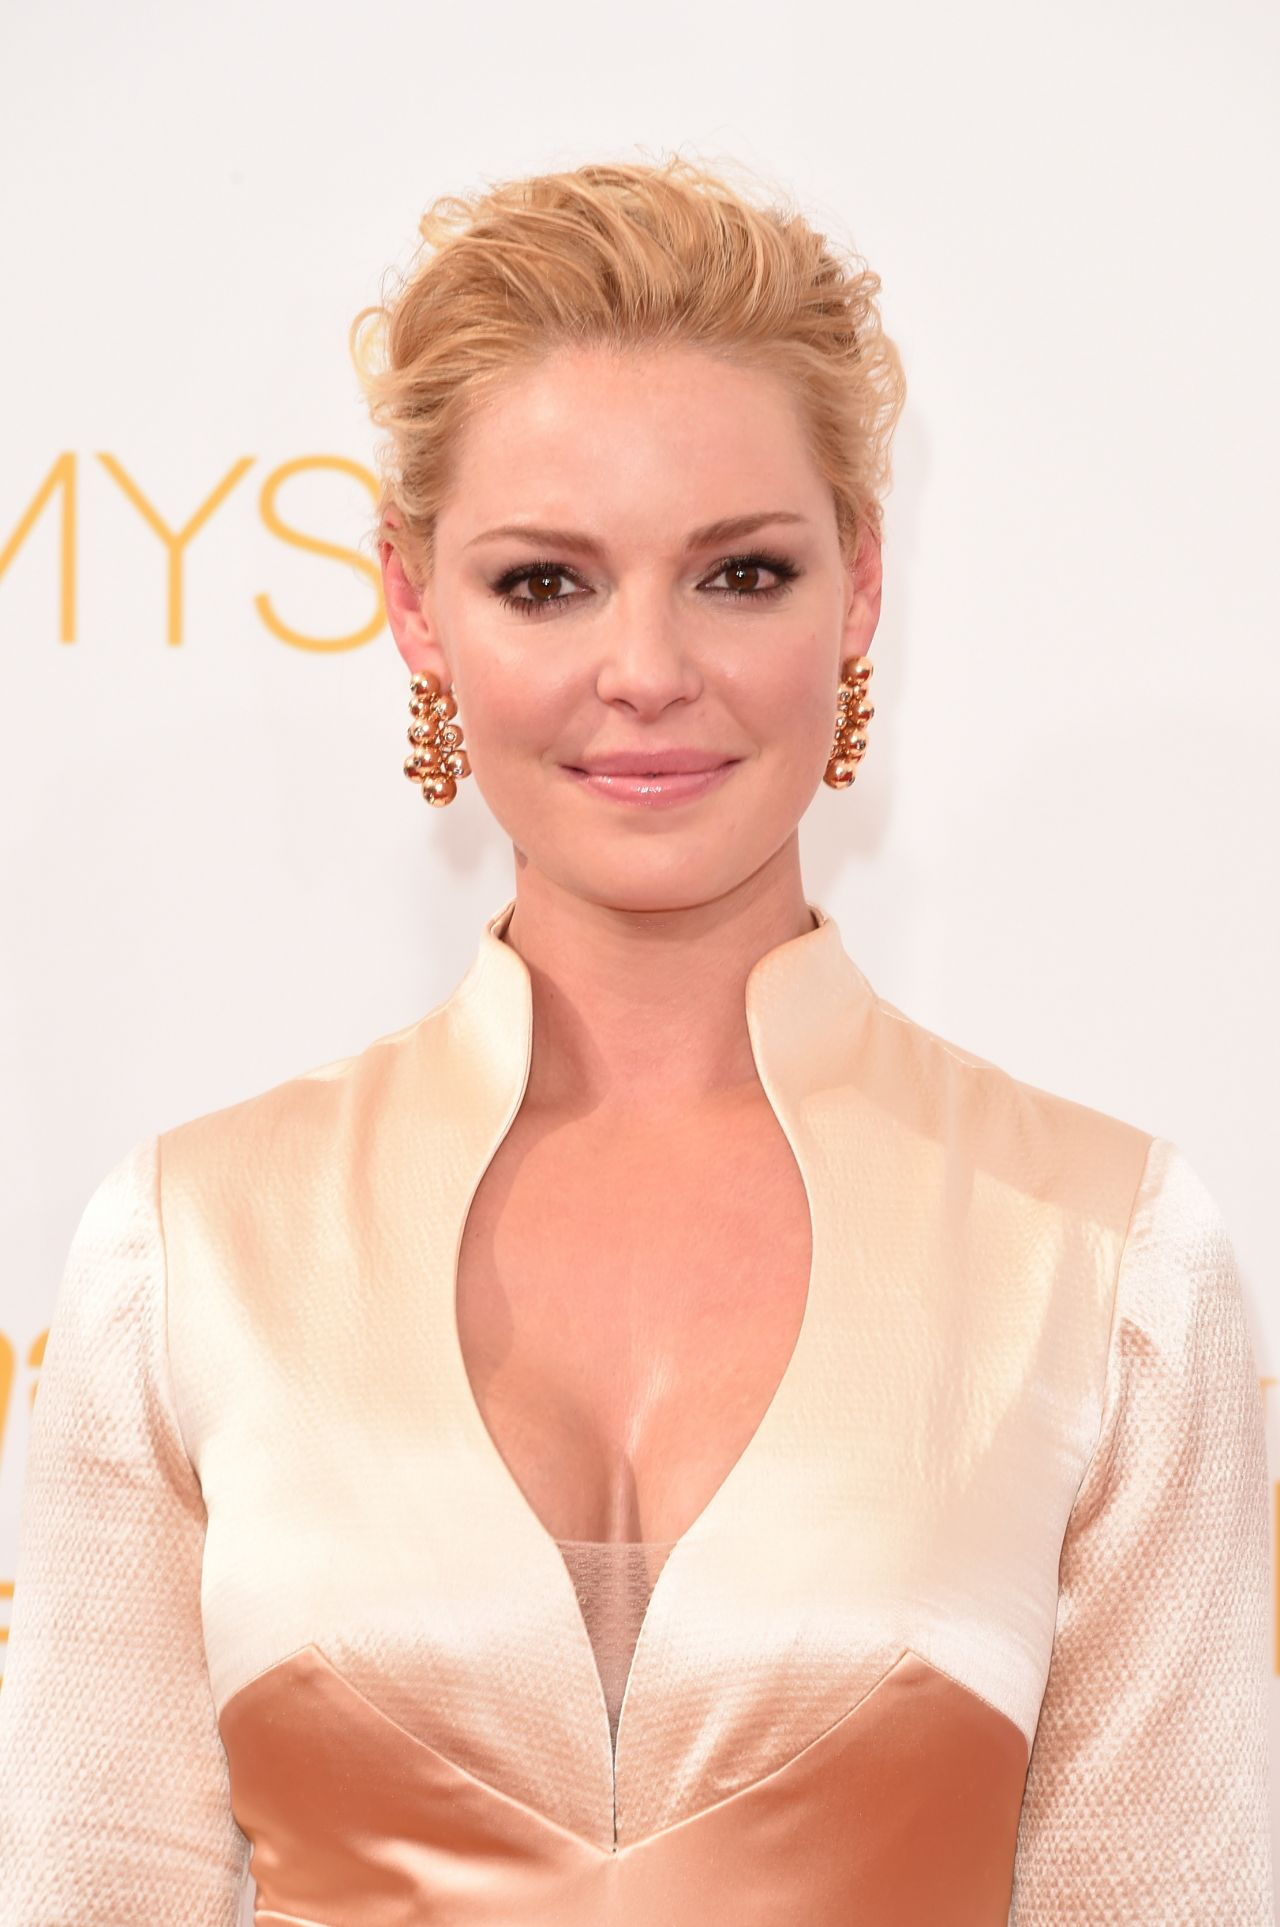 katherine-heigl-2014-primetime-emmy-awards-in-los-angeles_1